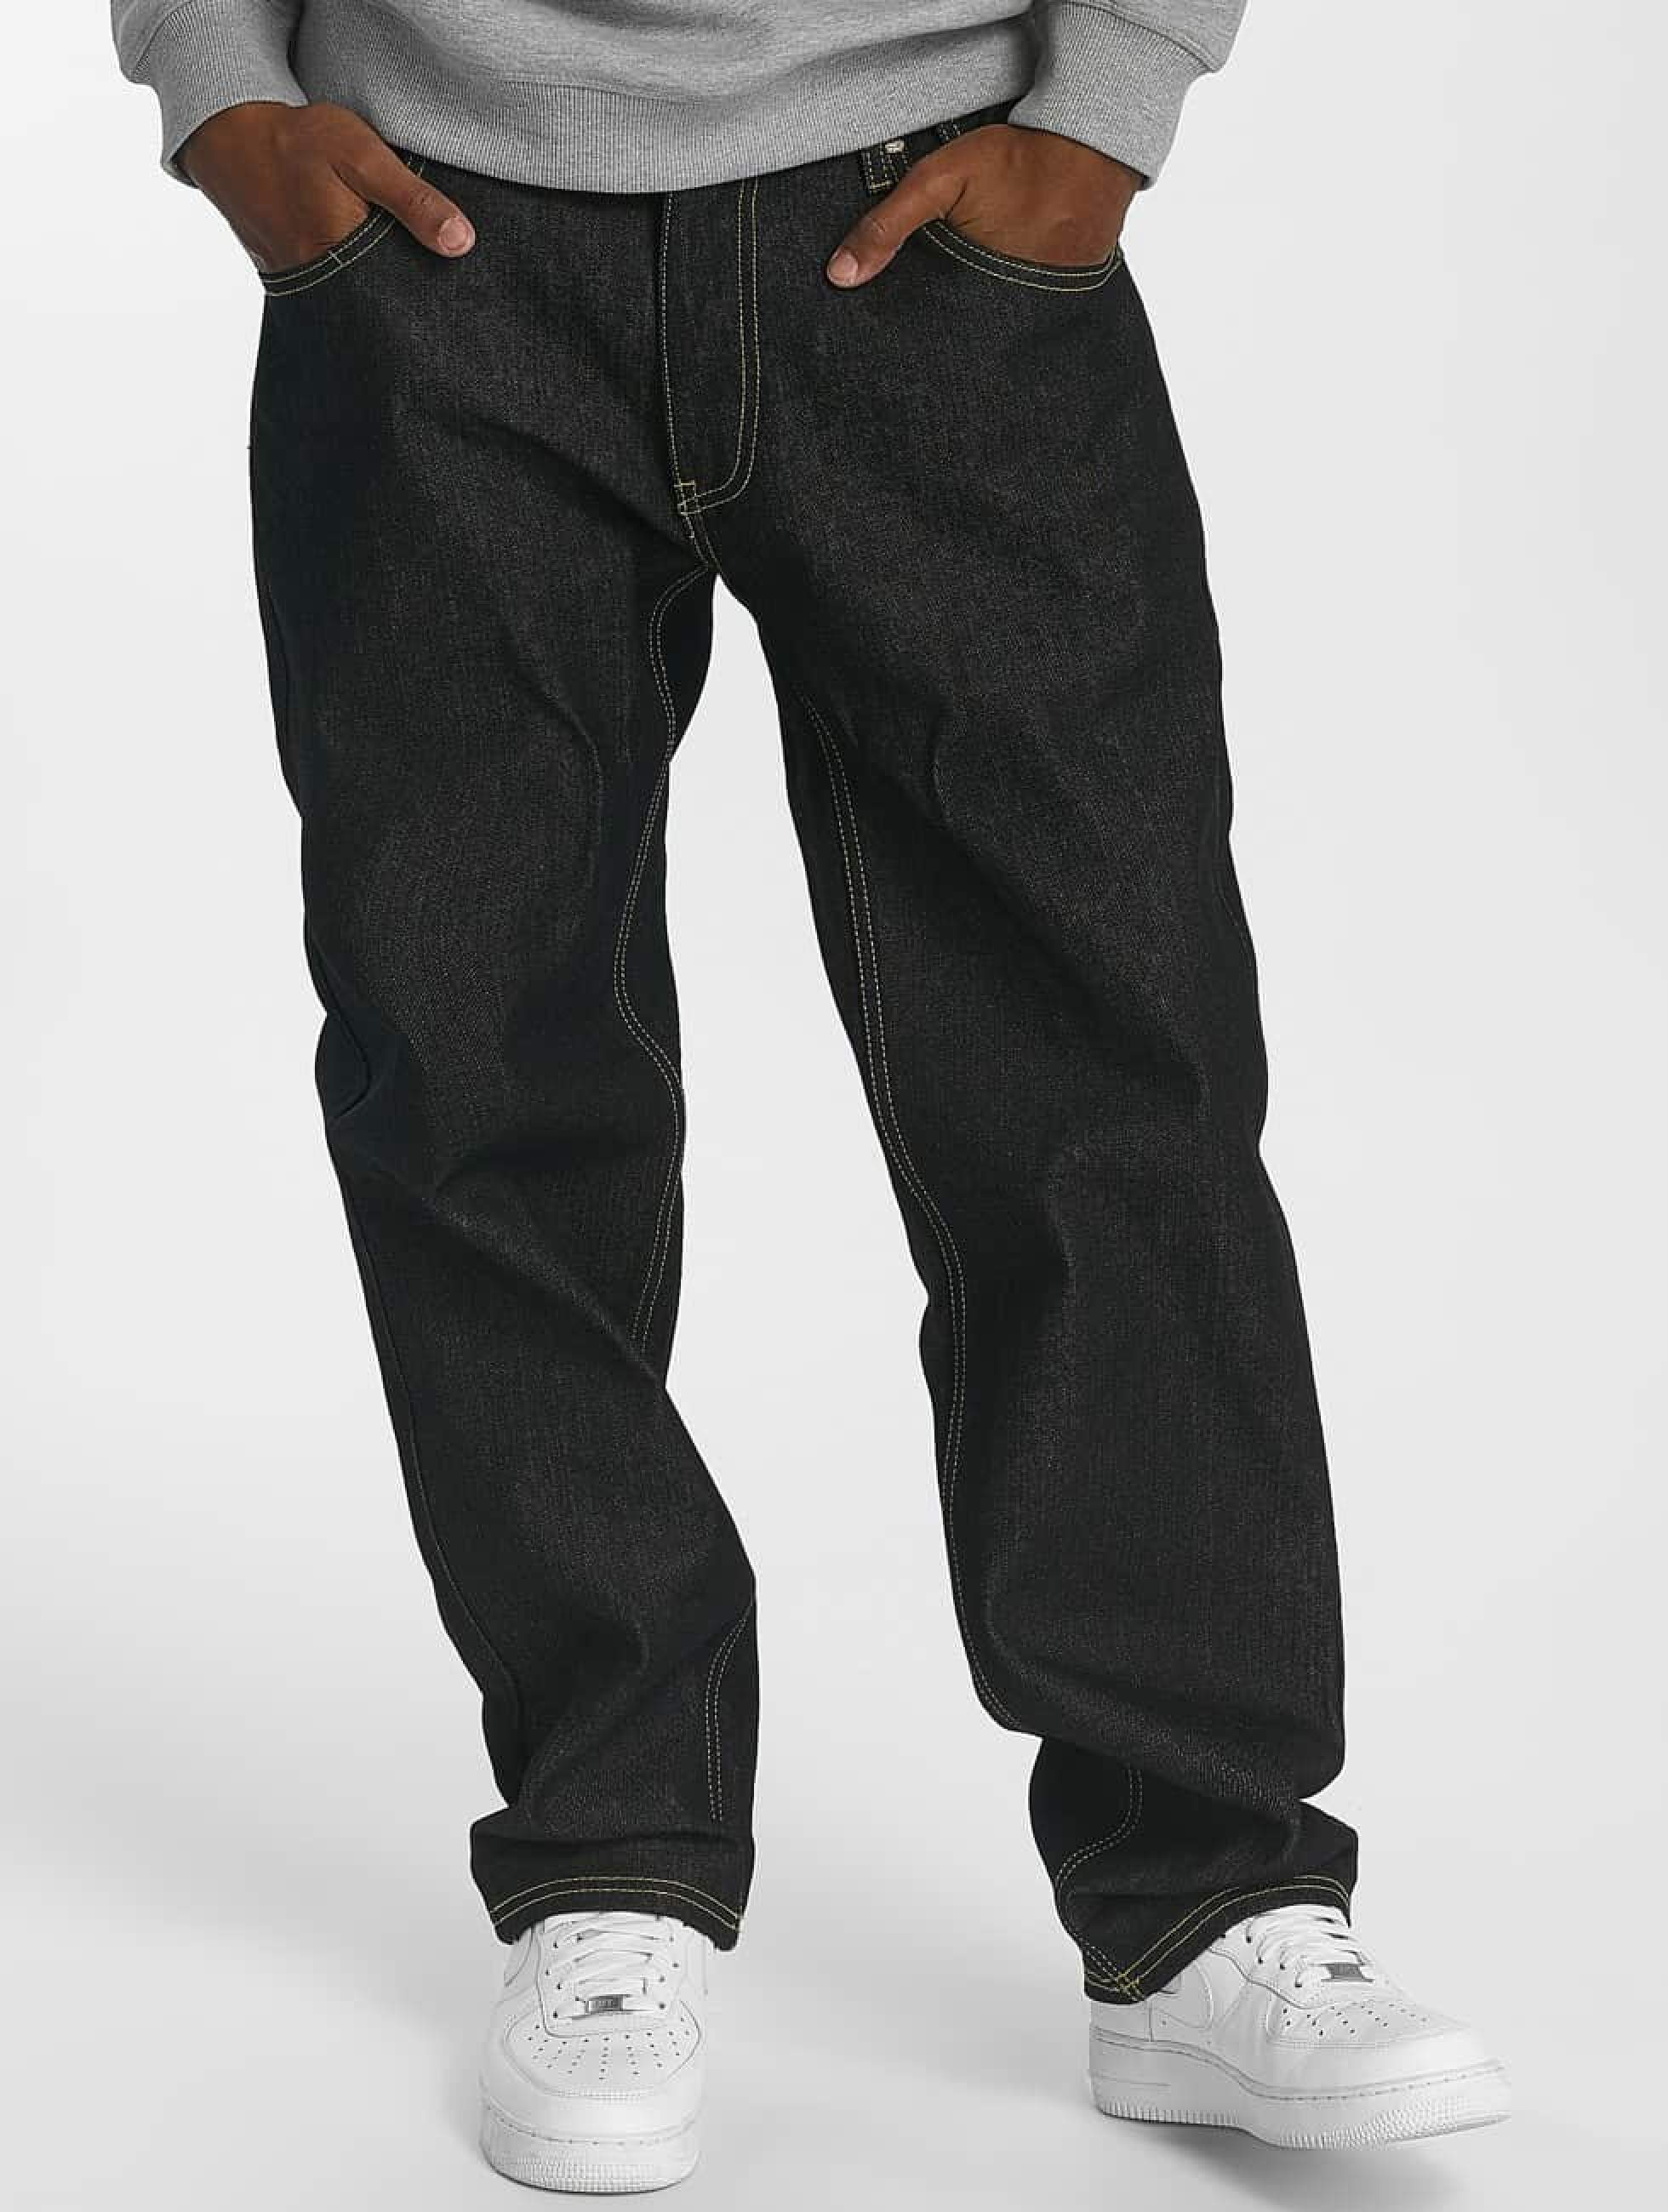 Ecko Unltd. / Loose Fit Jeans Camp's Lo in black W 42 L 34